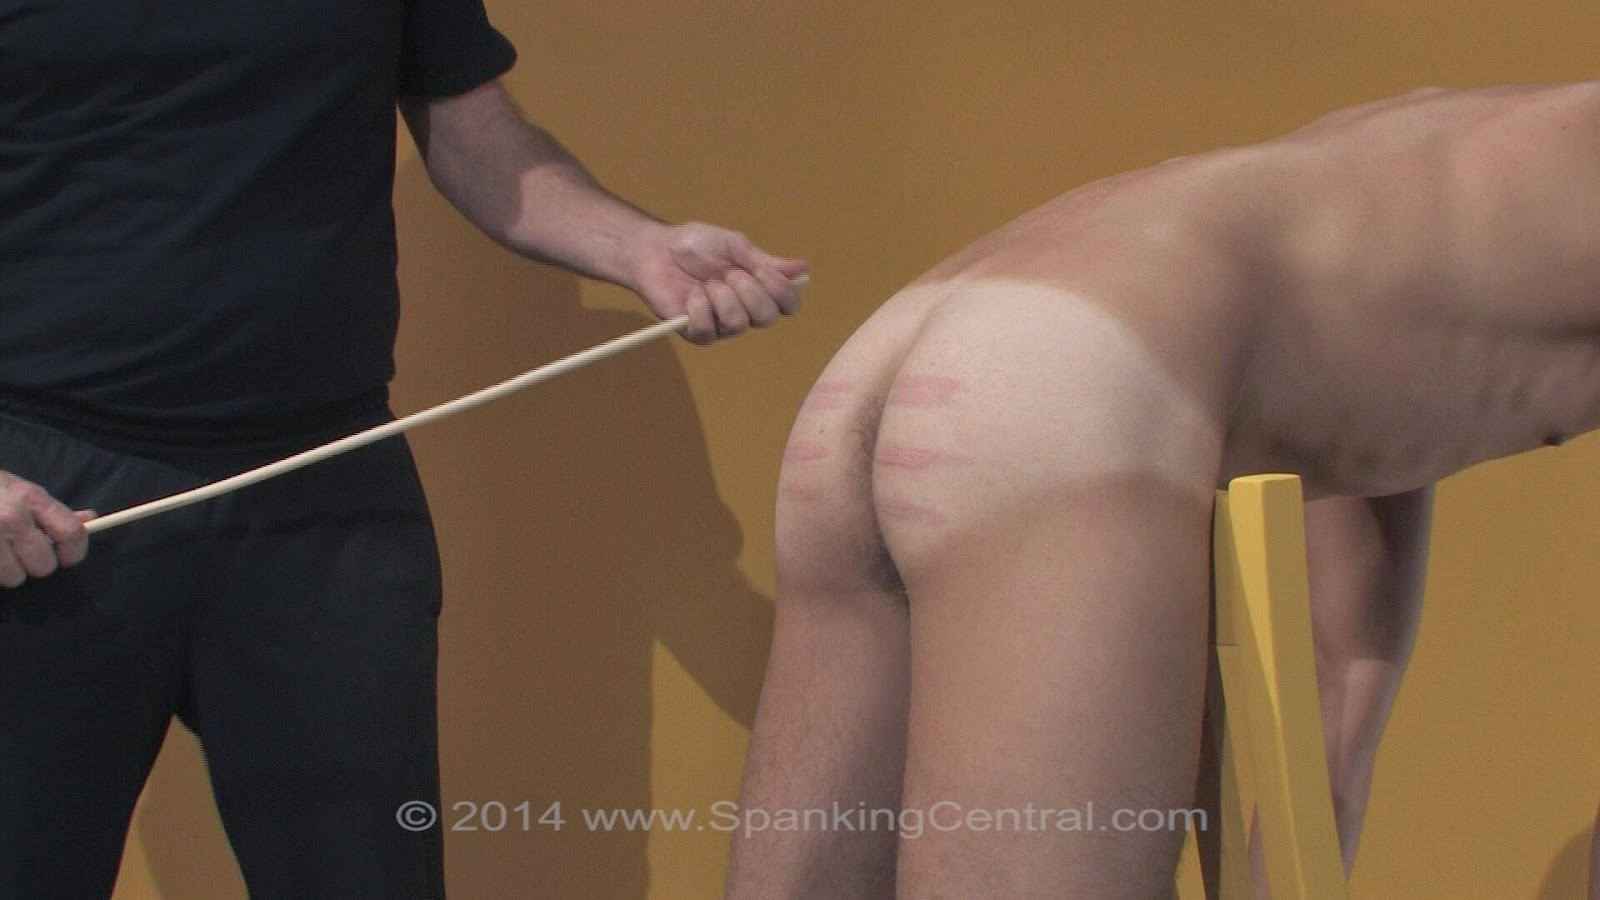 image Ryan spanking central gay first time hoyt